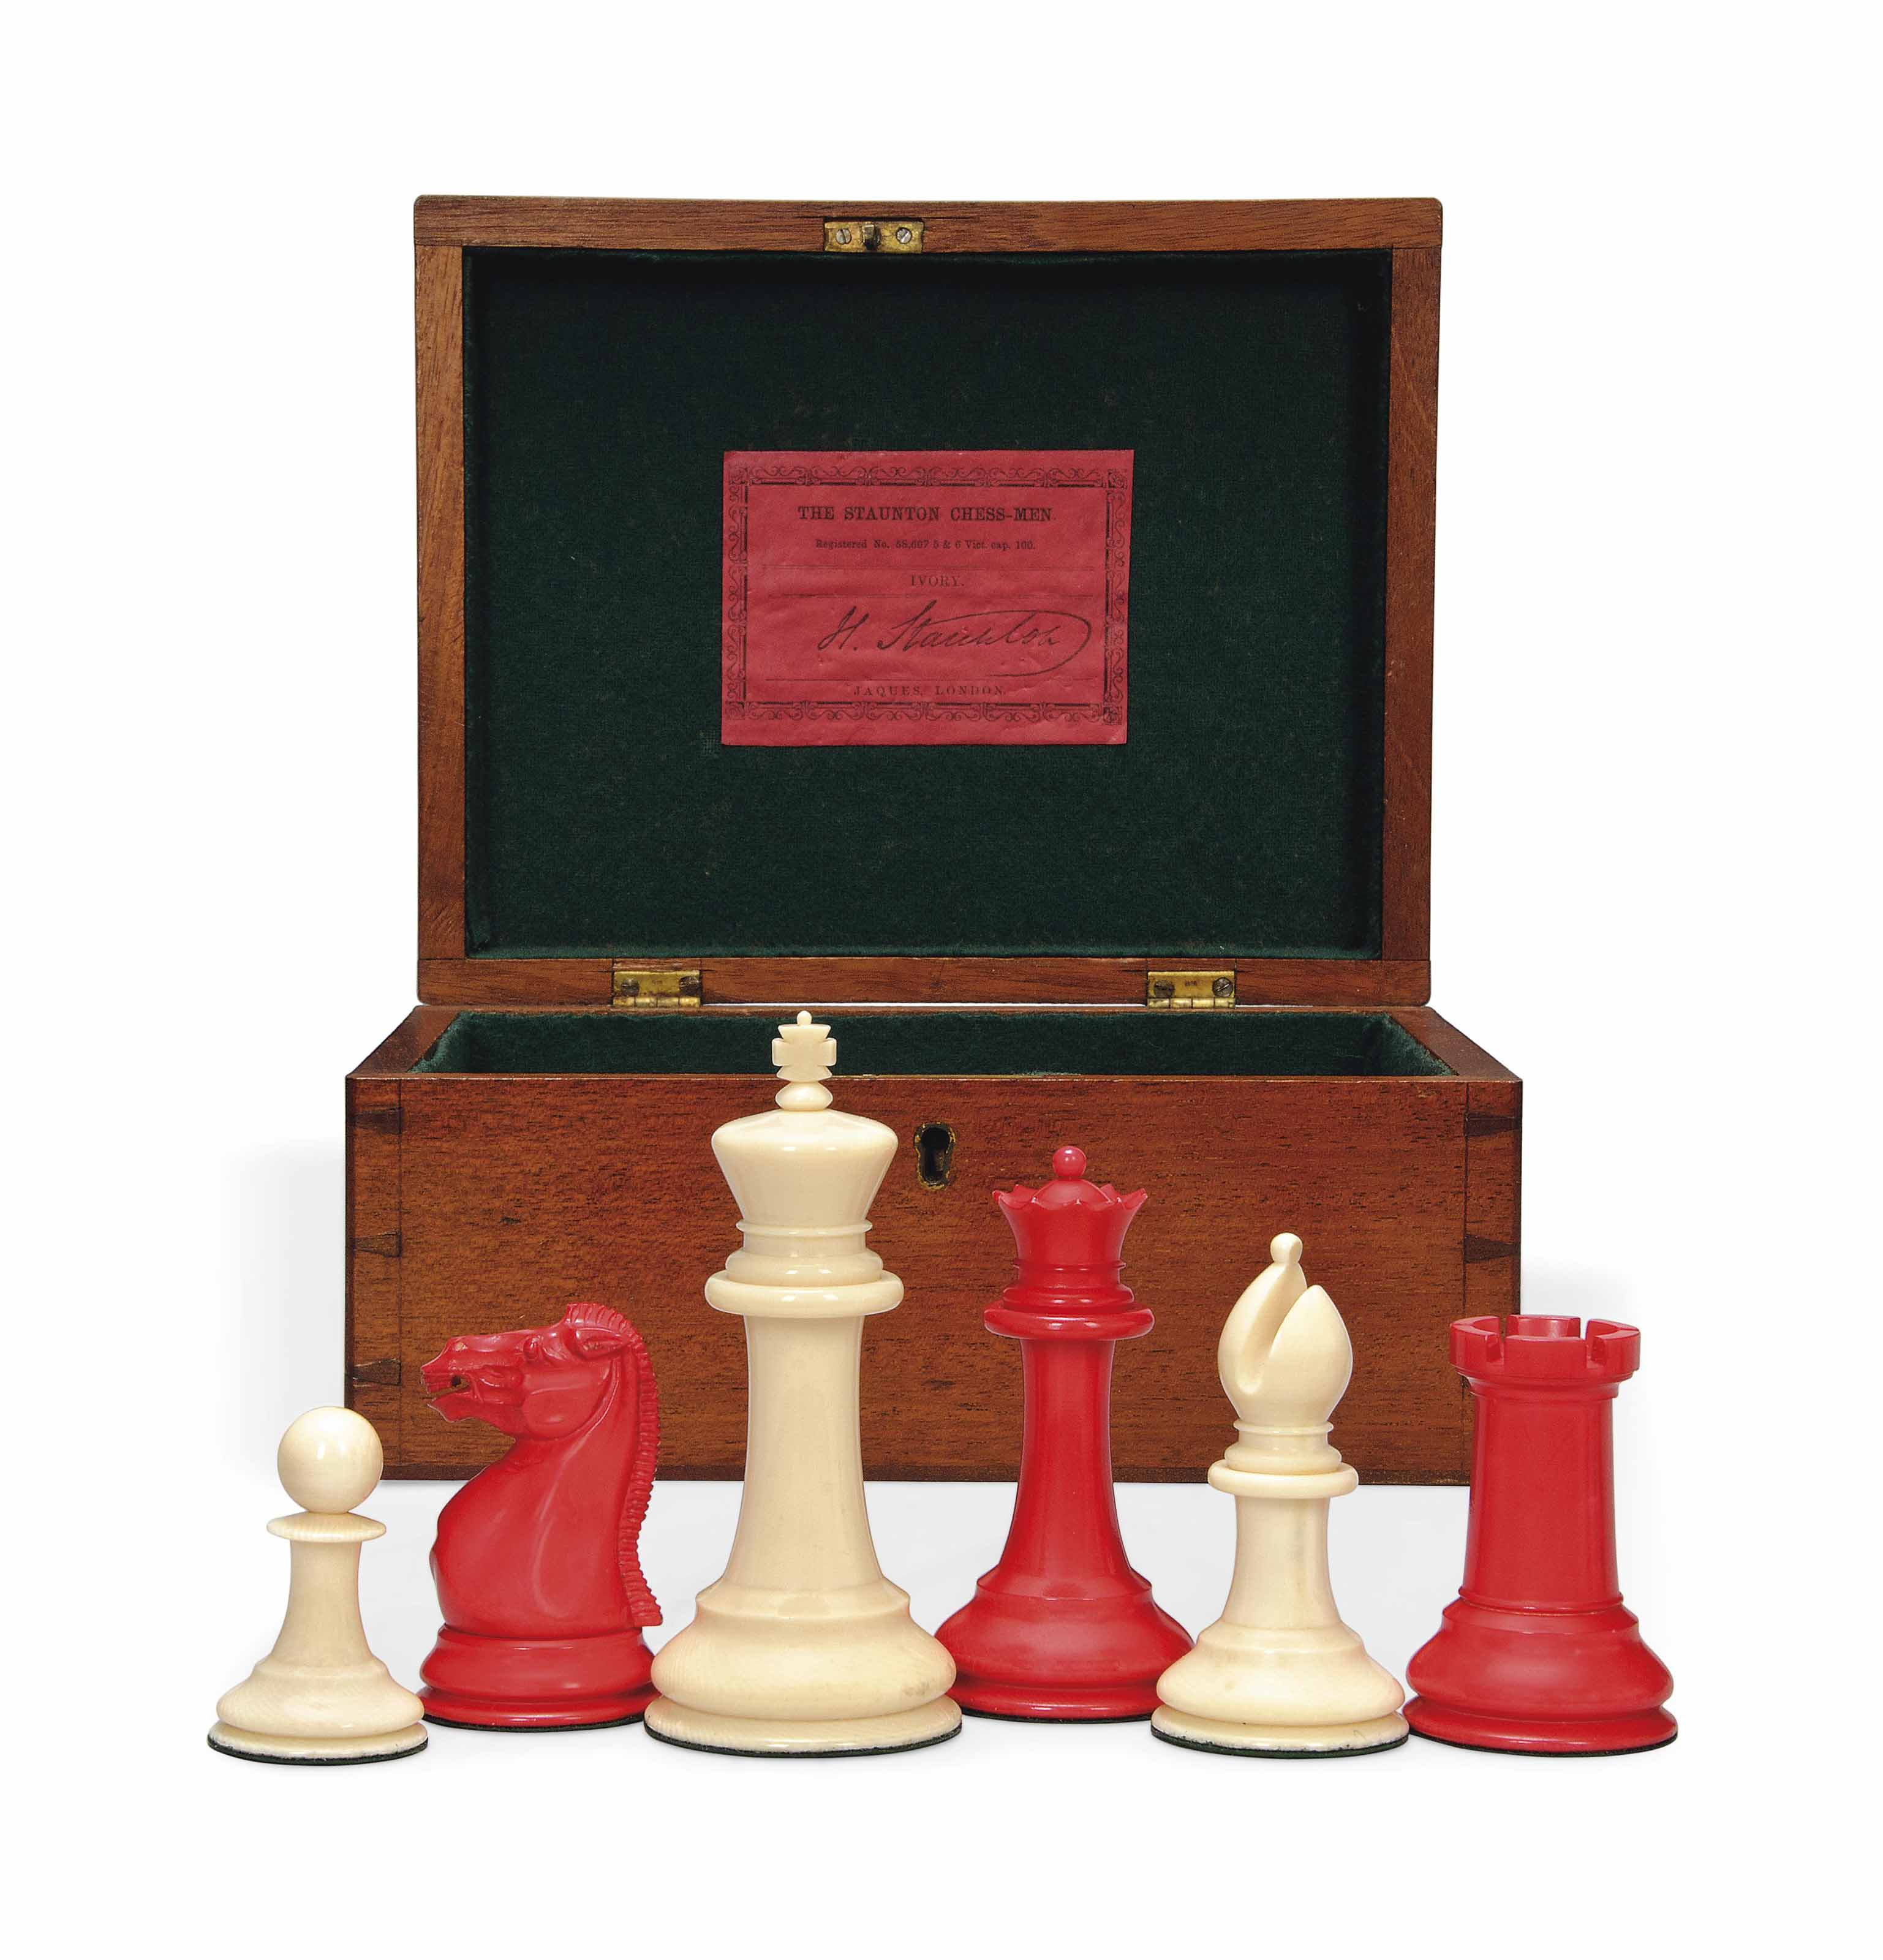 A VICTORIAN JAQUES STAUNTON CLUB SIZE IVORY CHESS SET